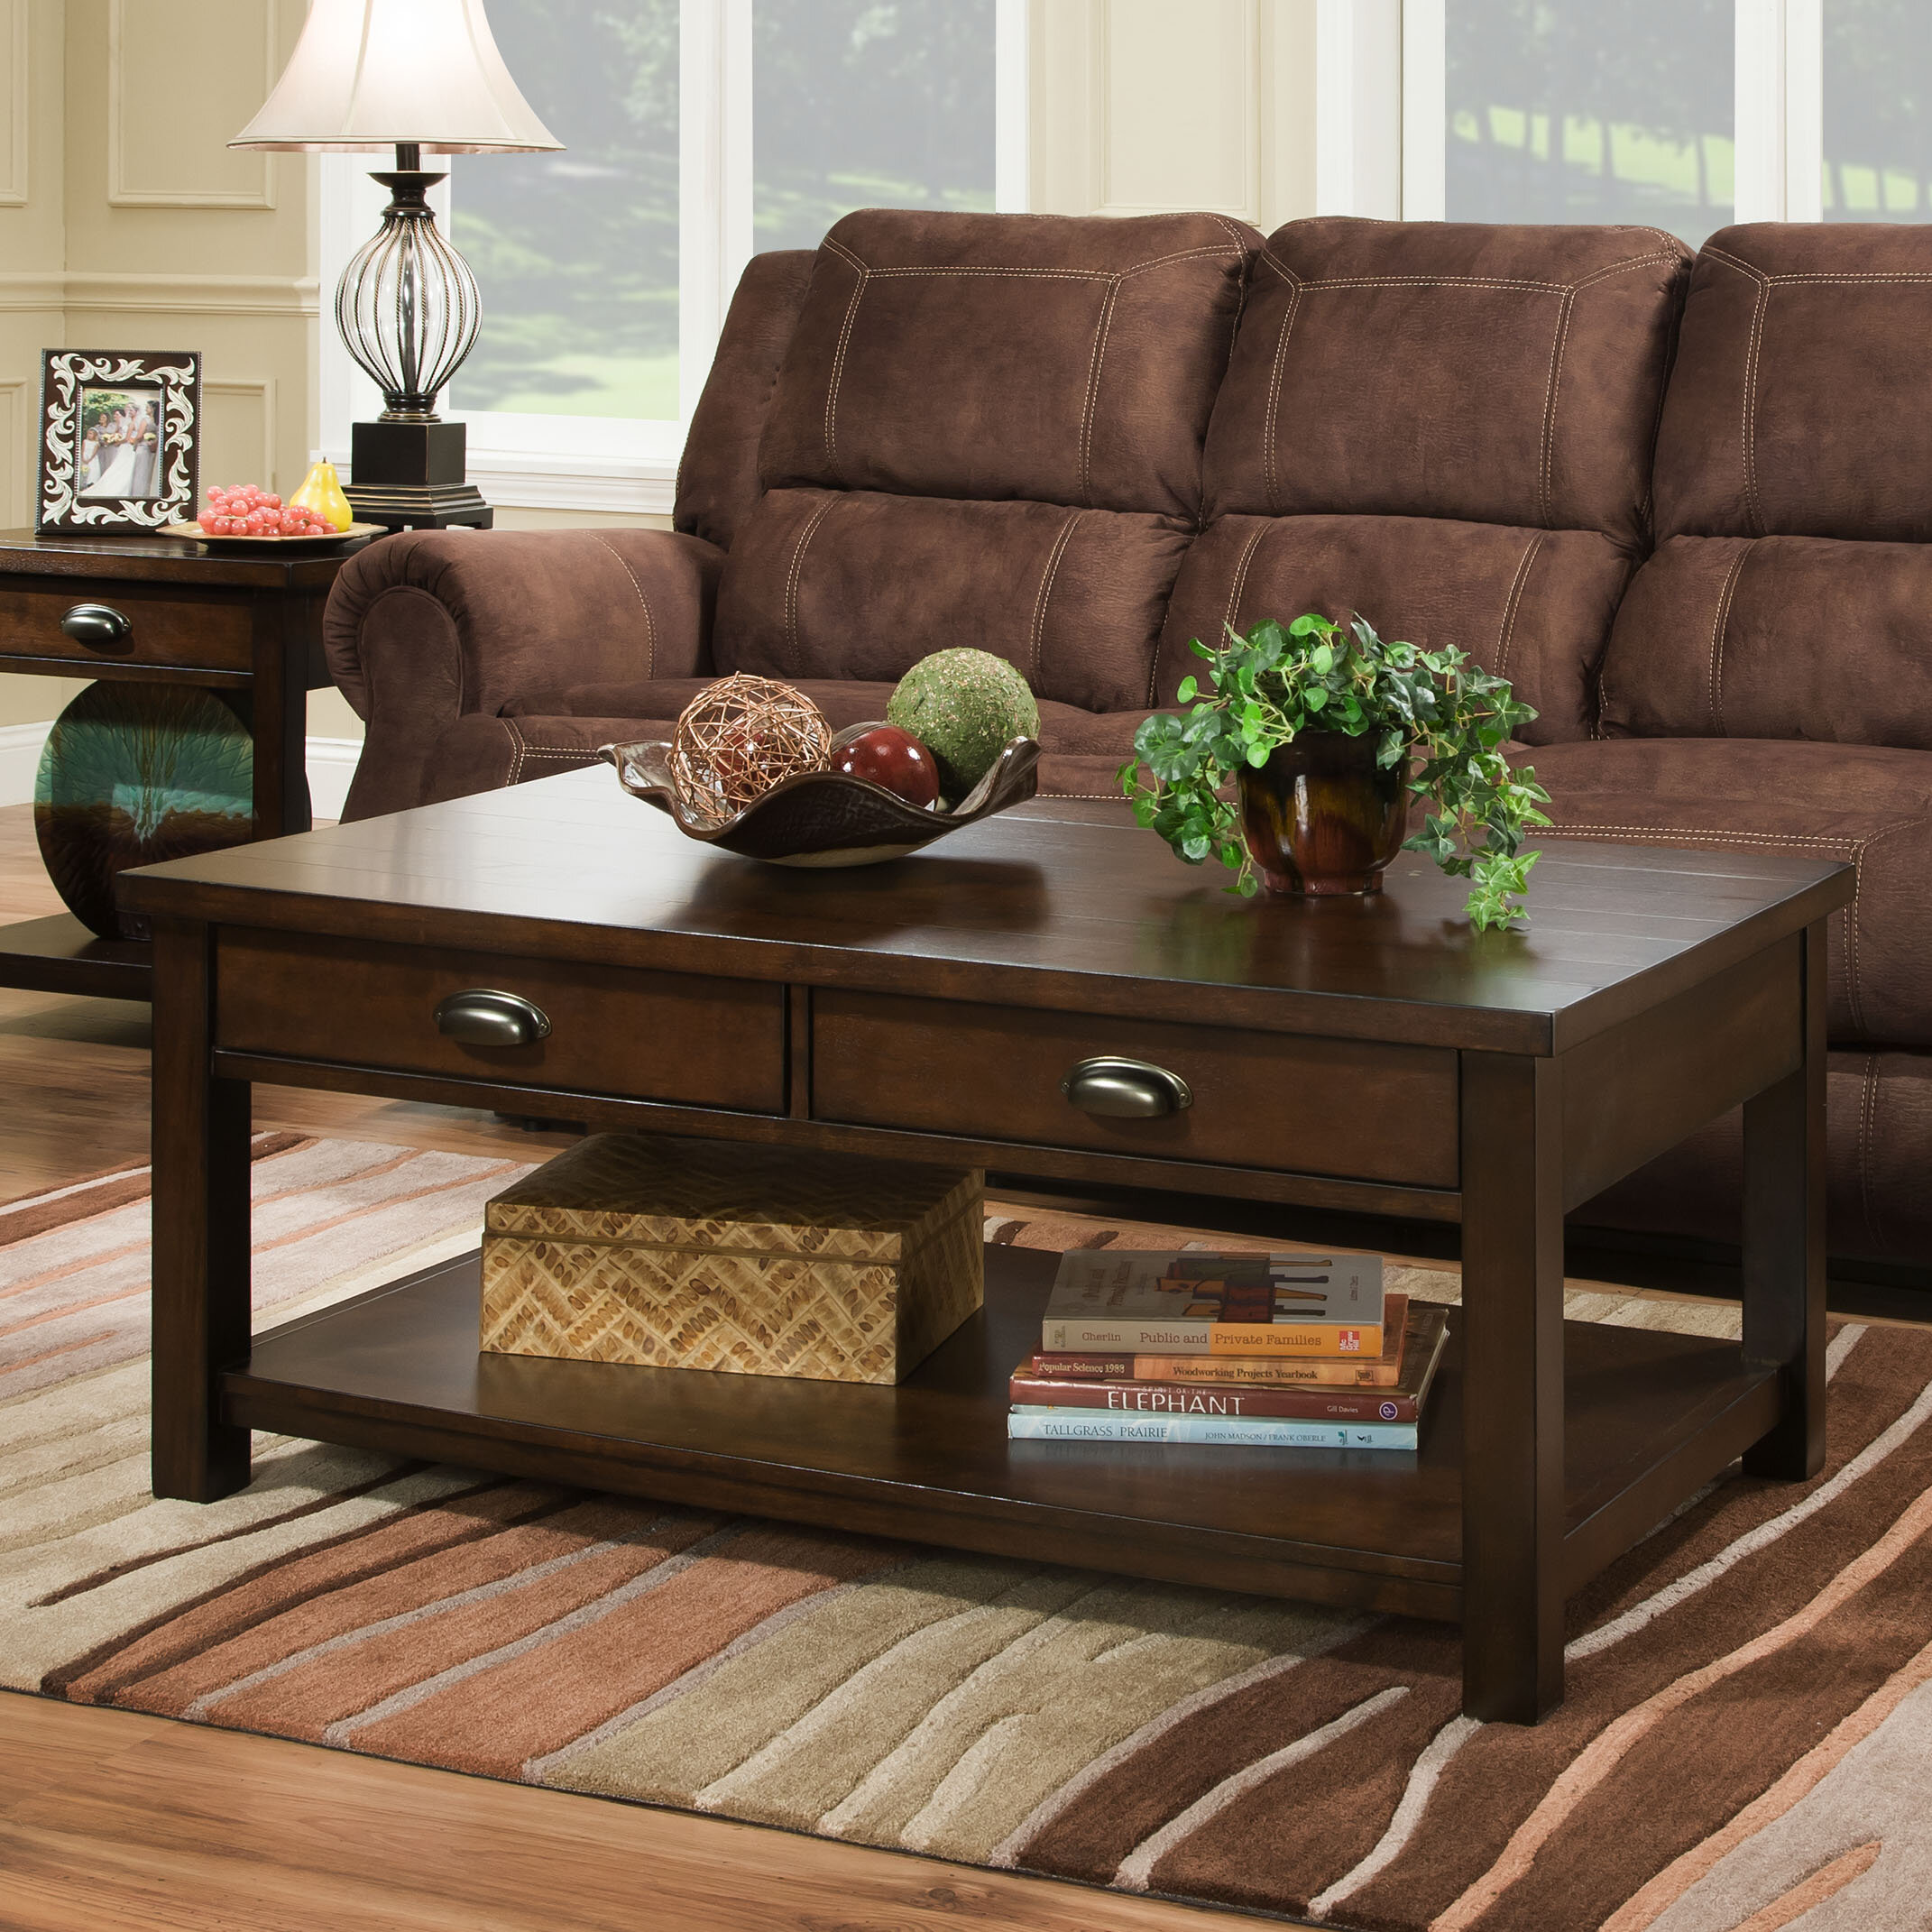 Alcott Hill Burley Rectangular Coffee Table by Simmons Casegoods